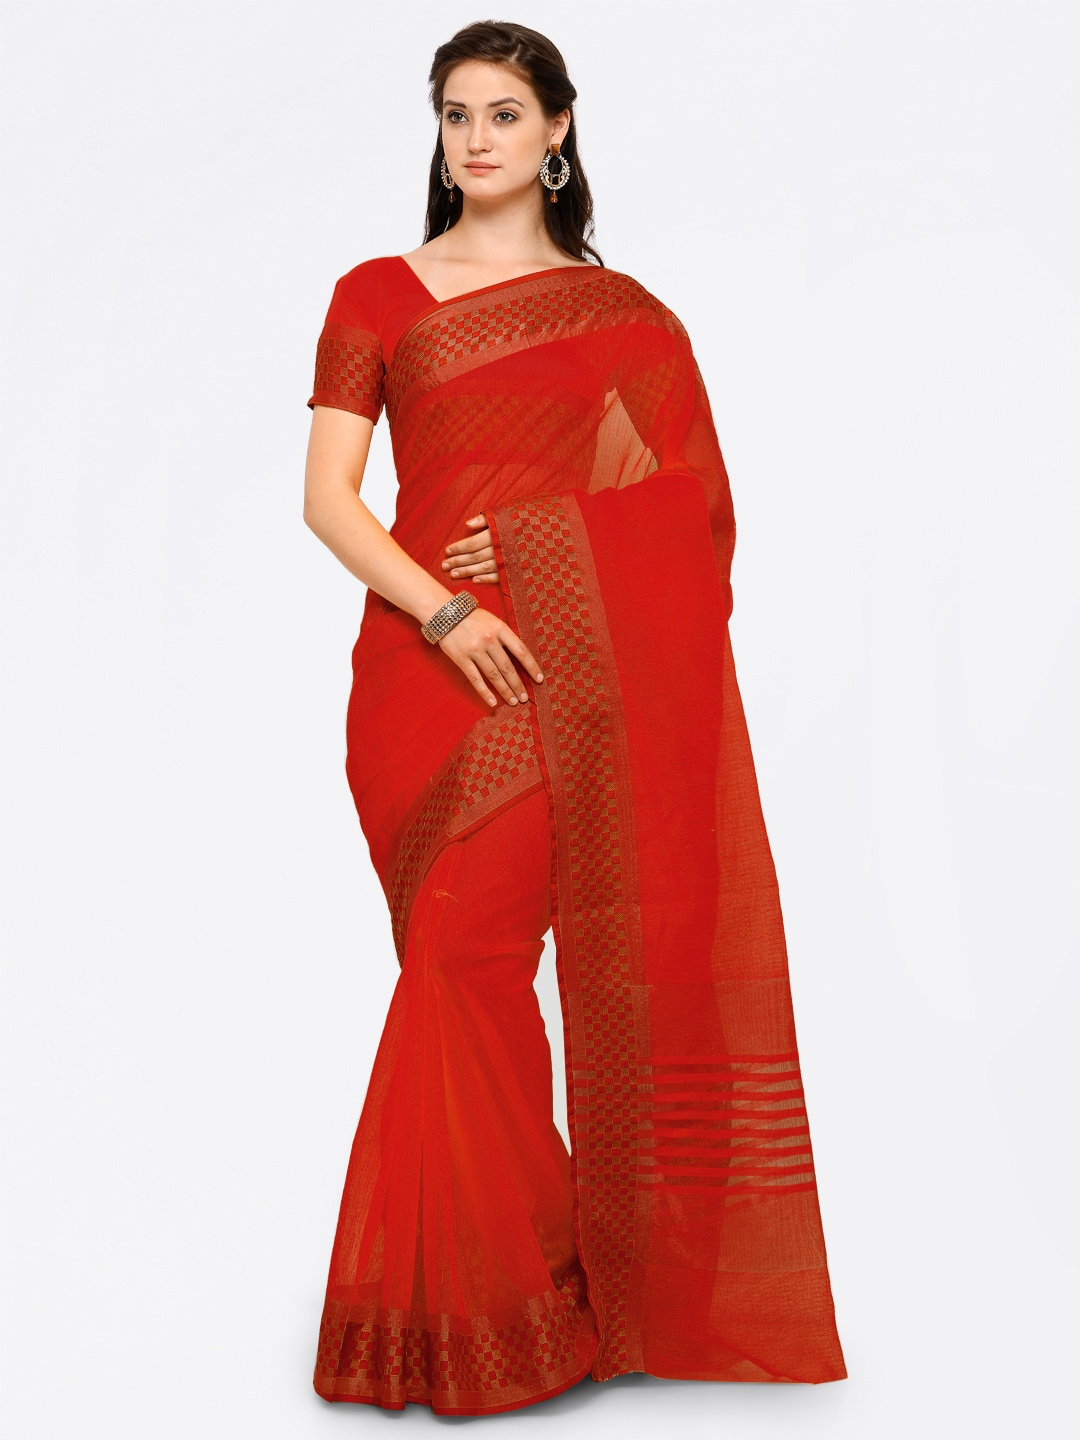 ca59ab34ea8 Red Saree - Buy Red Color Fashion Sarees Online